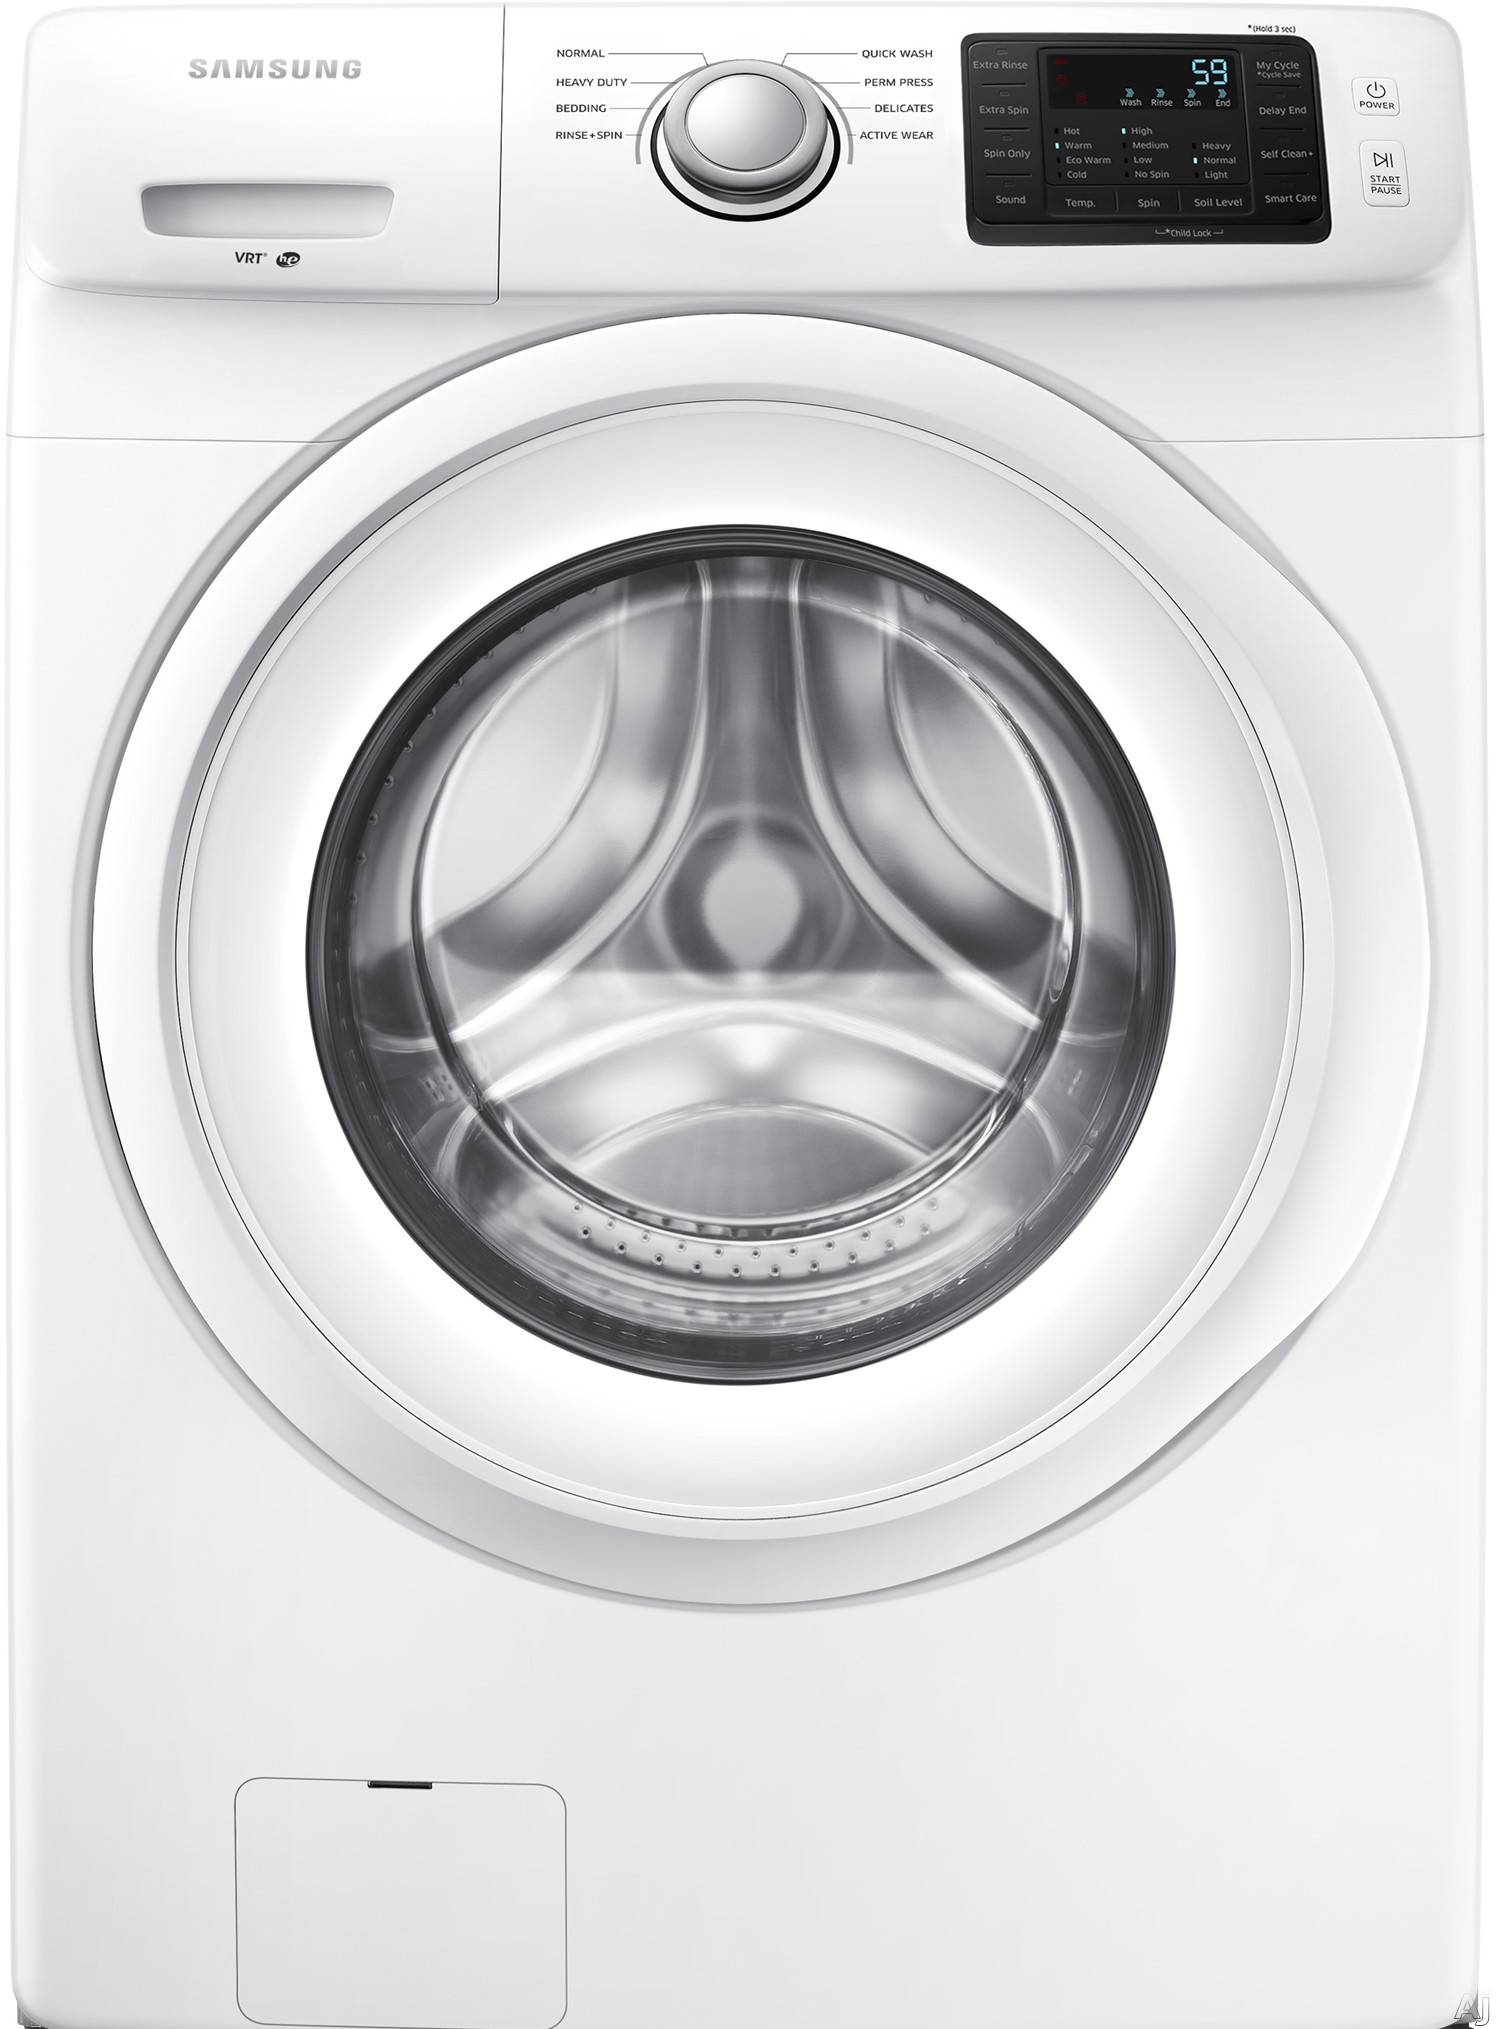 Samsung WF42H5000AW 27 Inch 4.2 cu. ft. Front Load Washer with 8 Wash Cycles, 1,200 RPM, Vibration Reduction Technology, Smart Care, Self Clean+, Diamond Drum Interior and ENERGY STAR Certified WF42H5000AW